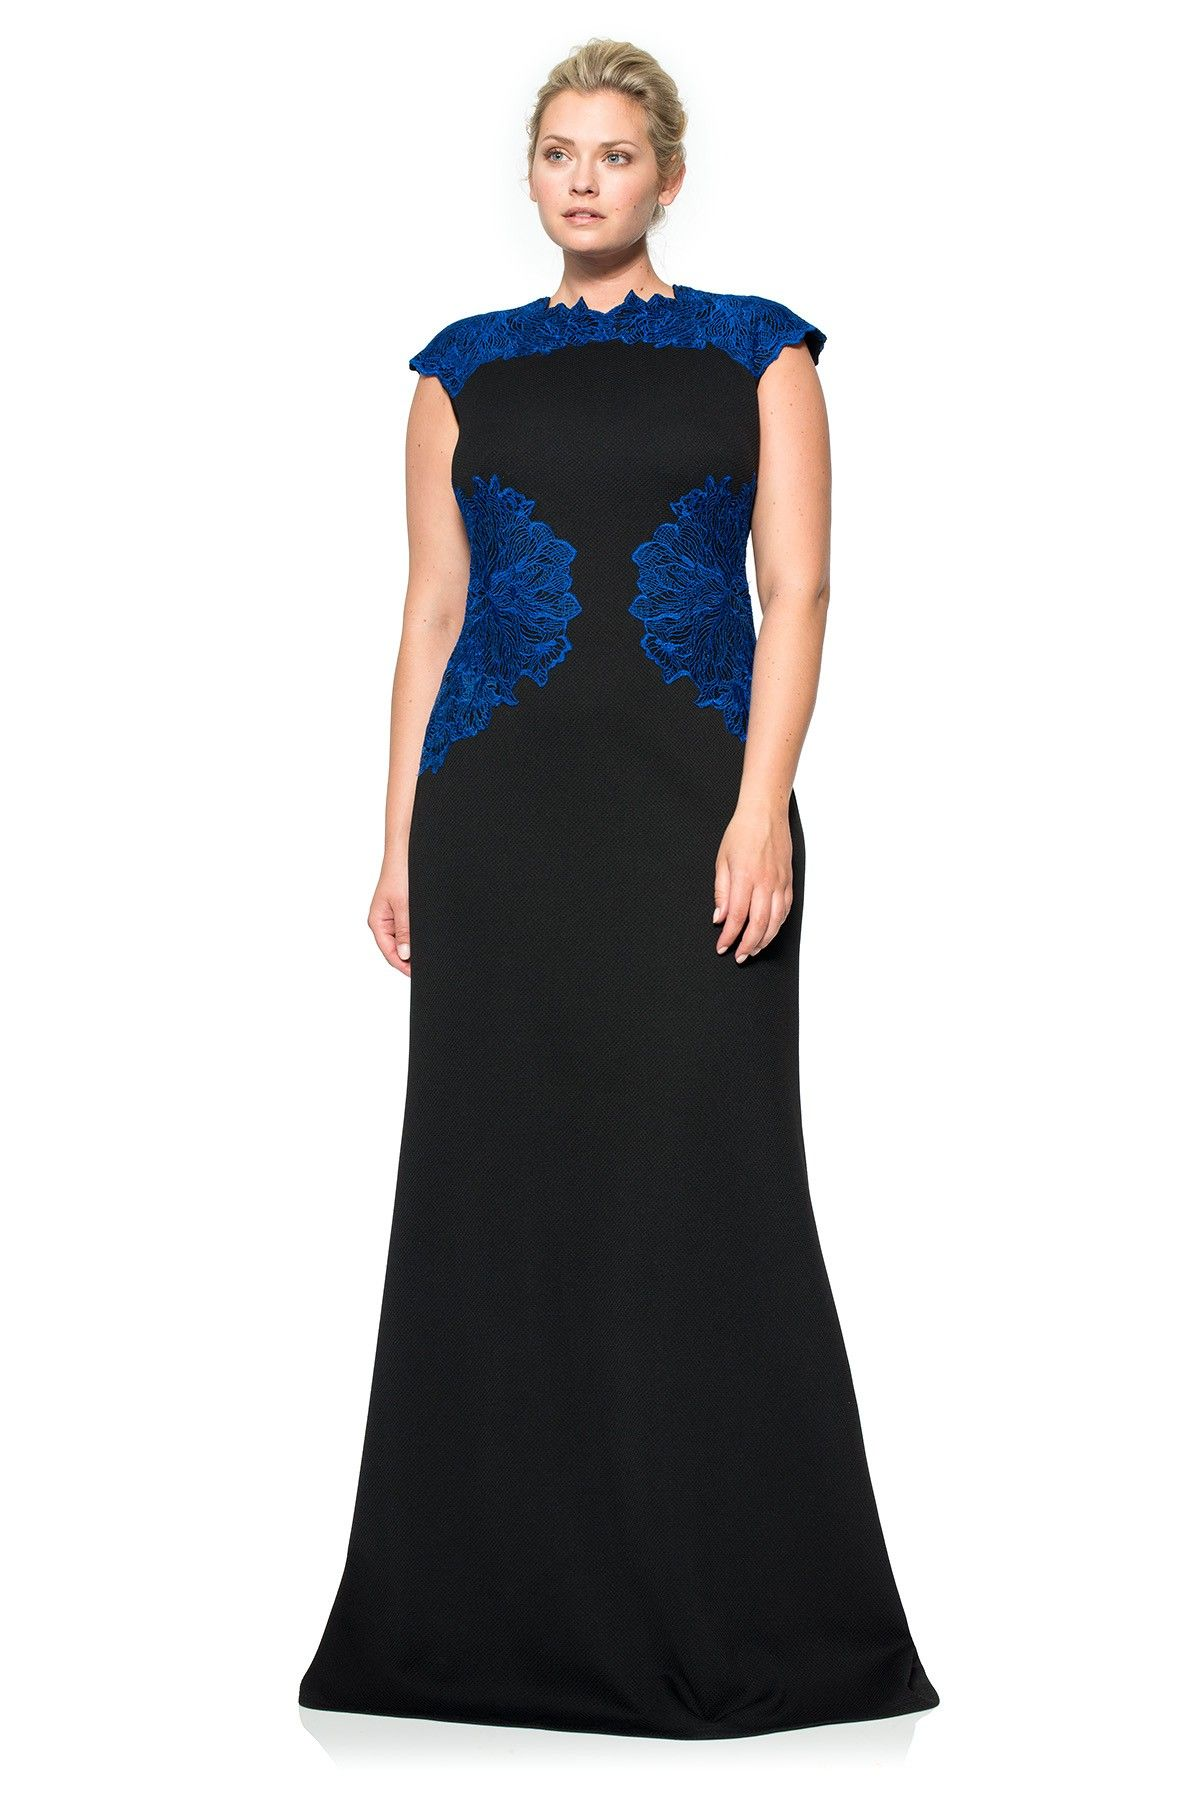 Perforated Neoprene and Embroidered Lace Gown - PLUS SIZE ...